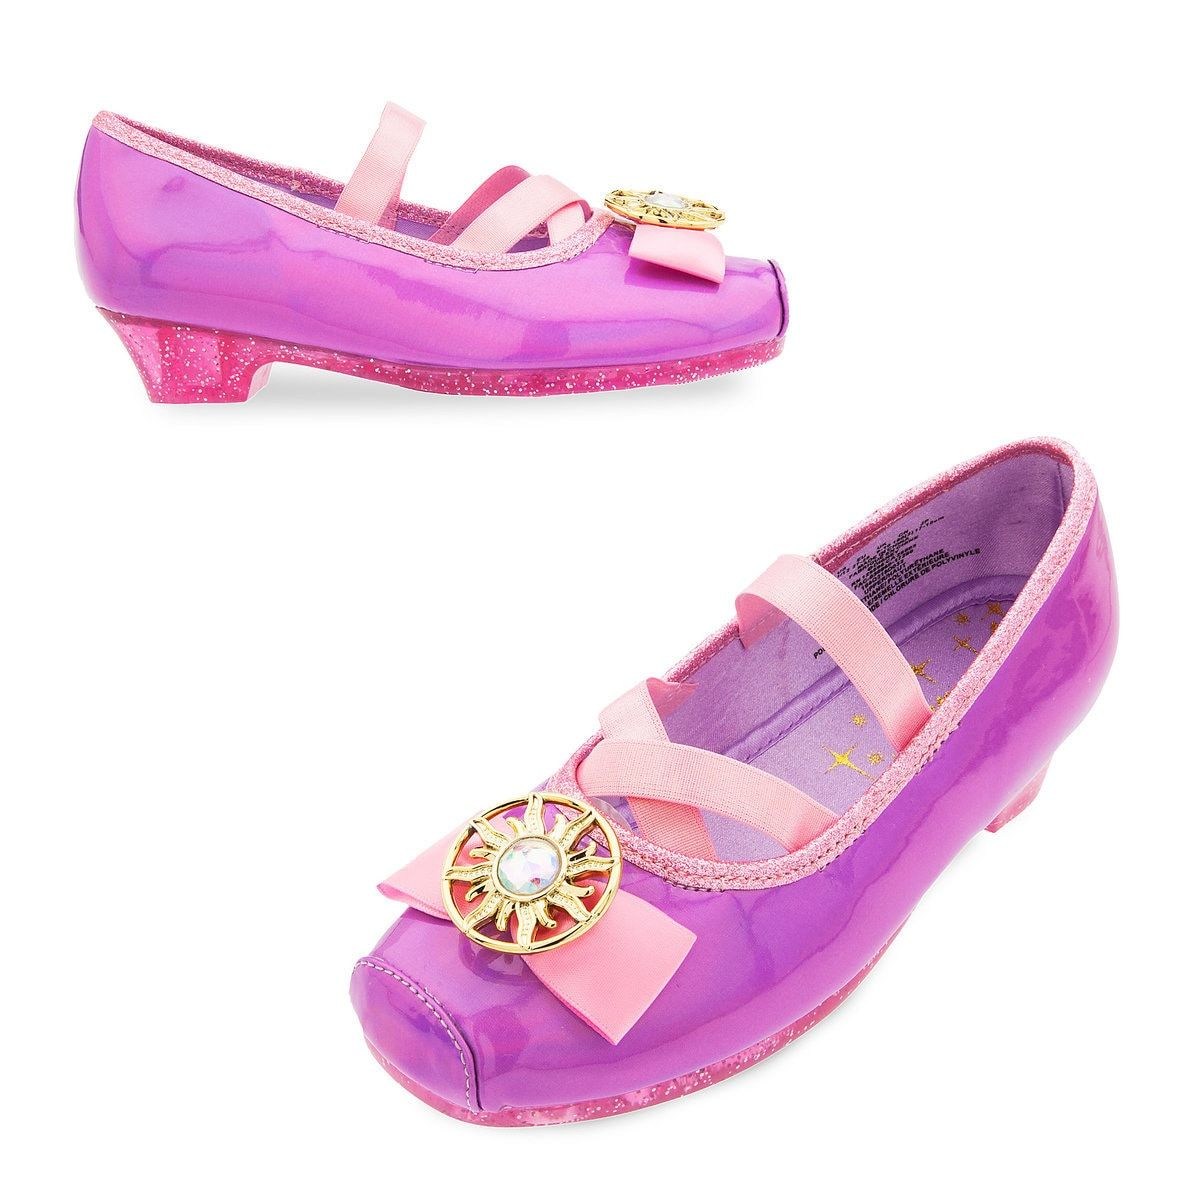 Disney Store Rapunzel Tangled Series Shoes 7//8 or 2//3 Costume